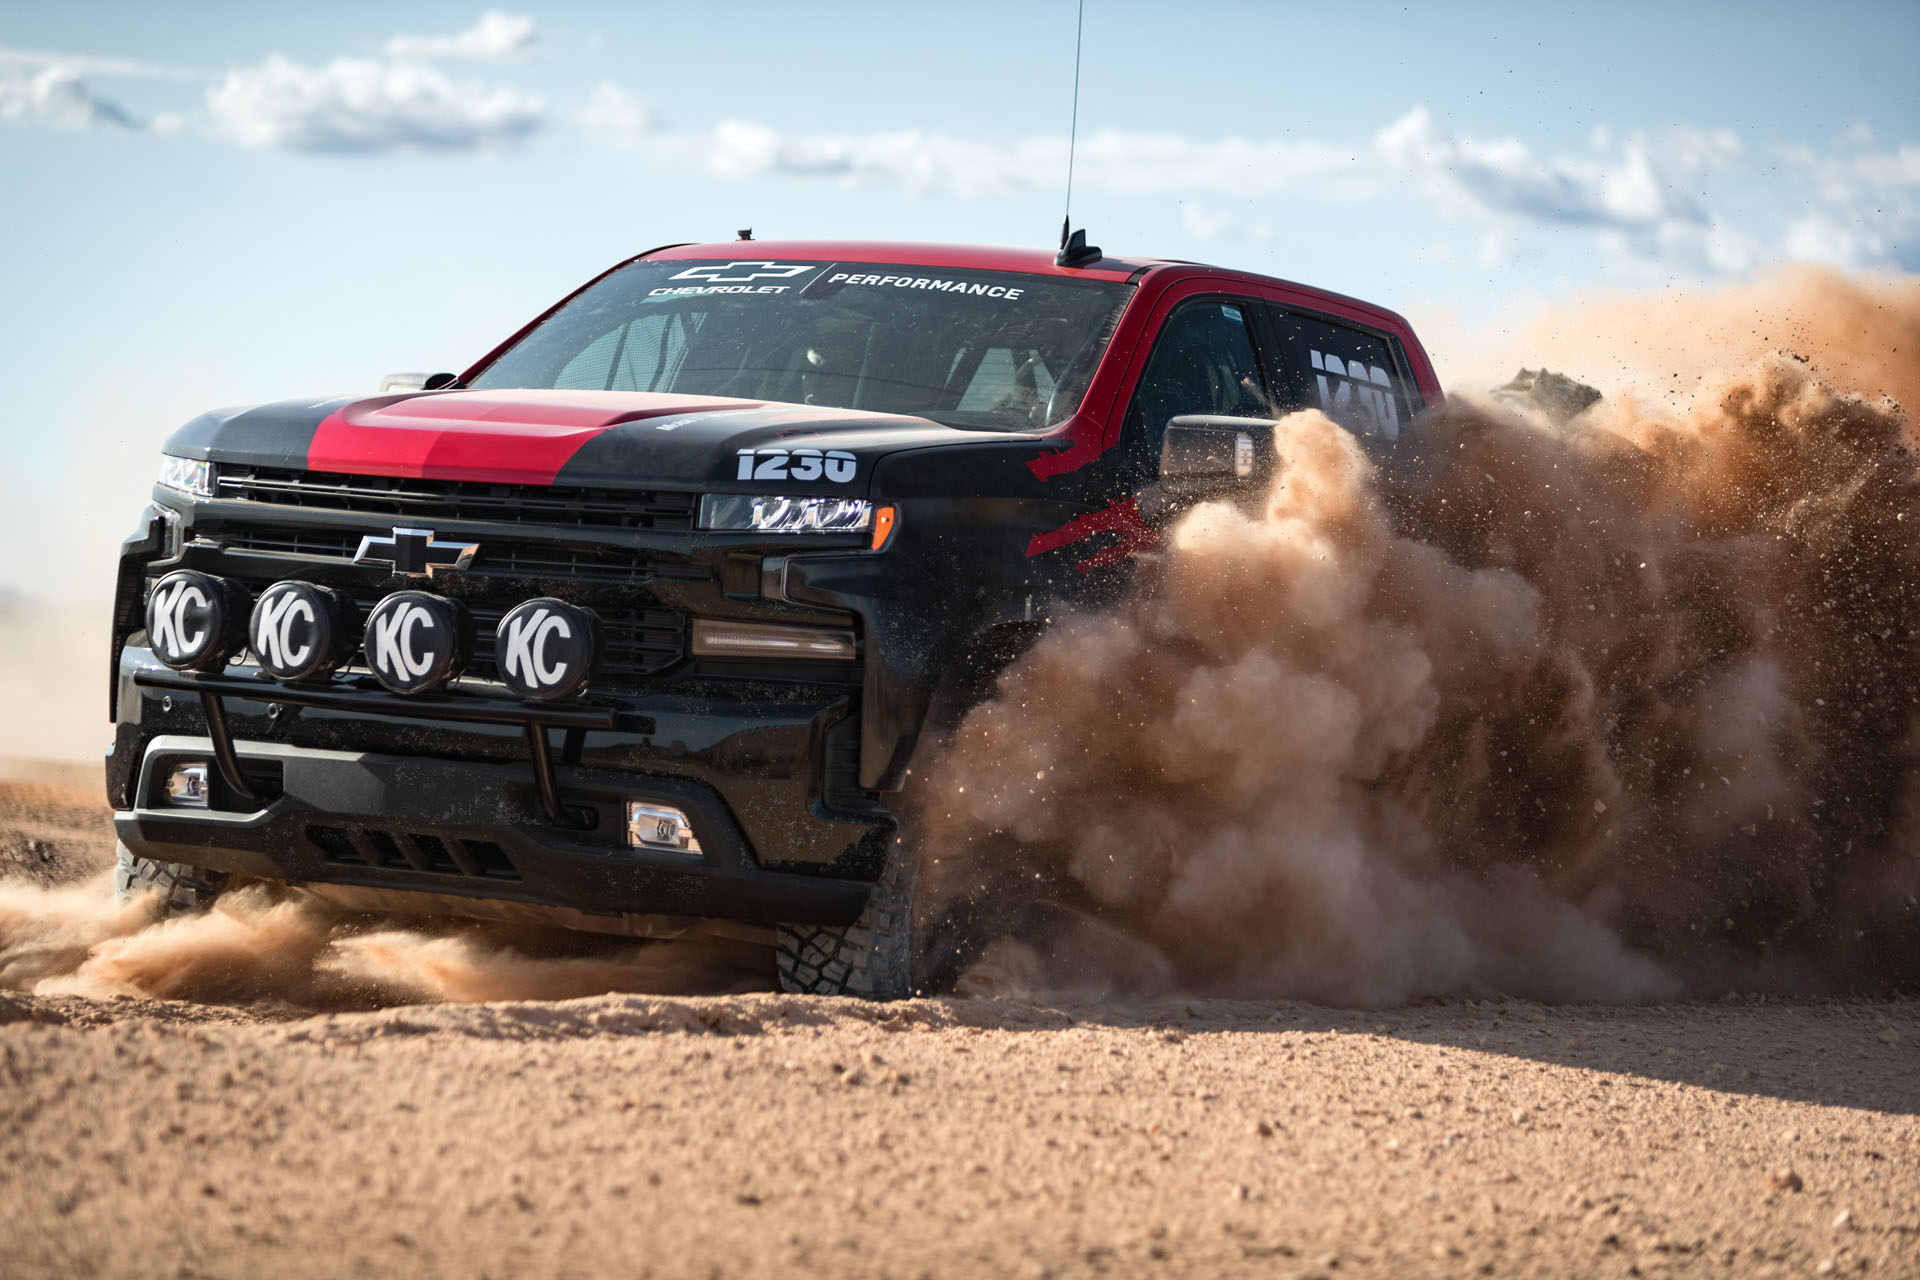 Chevrolet Silverado makes off-road racing debut